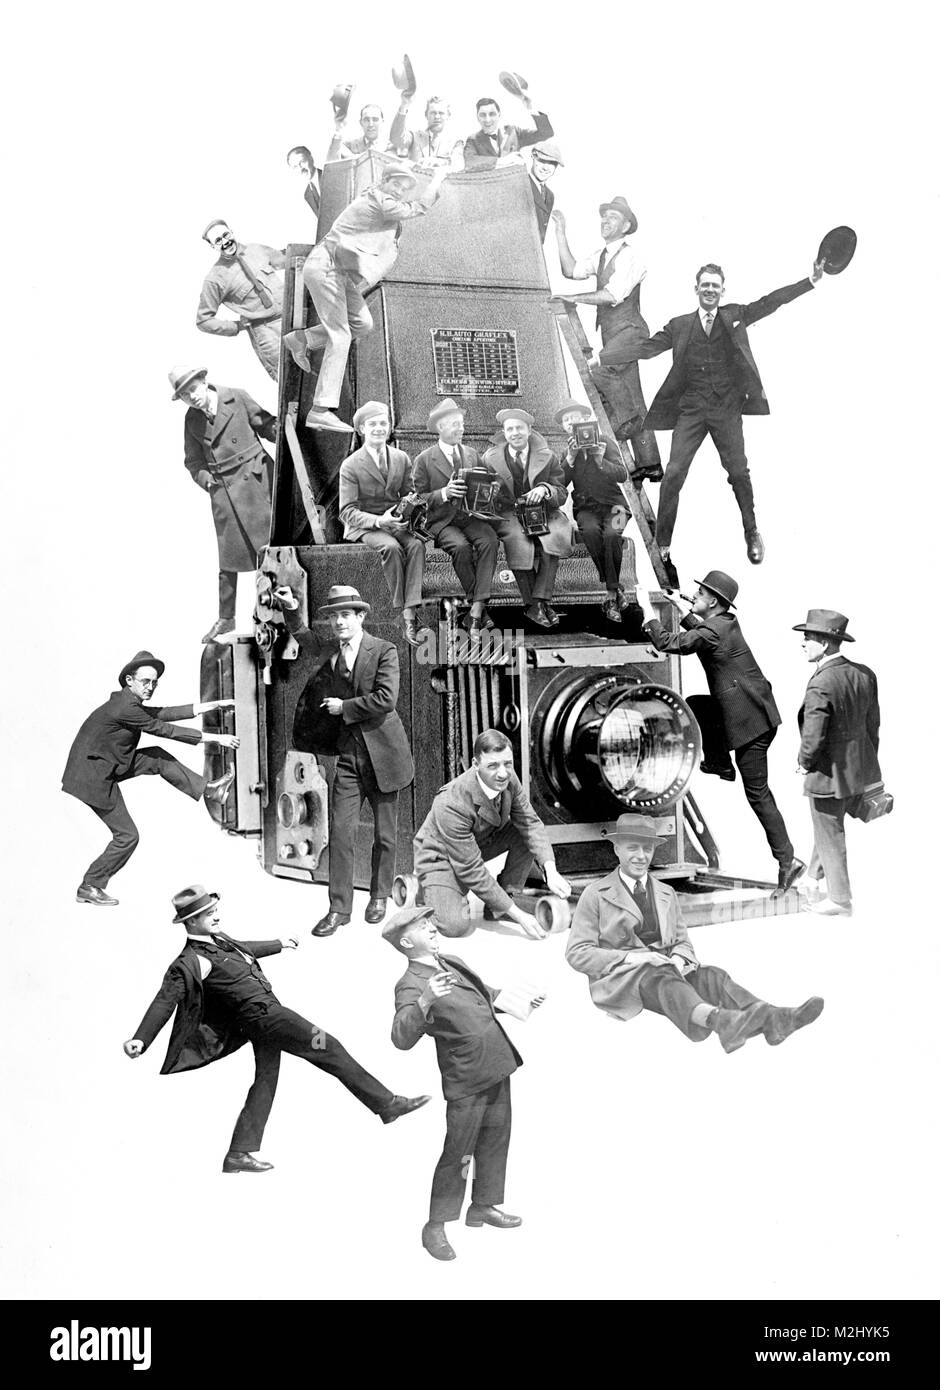 Photomontage of Photographers and Camera, 1910s - Stock Image